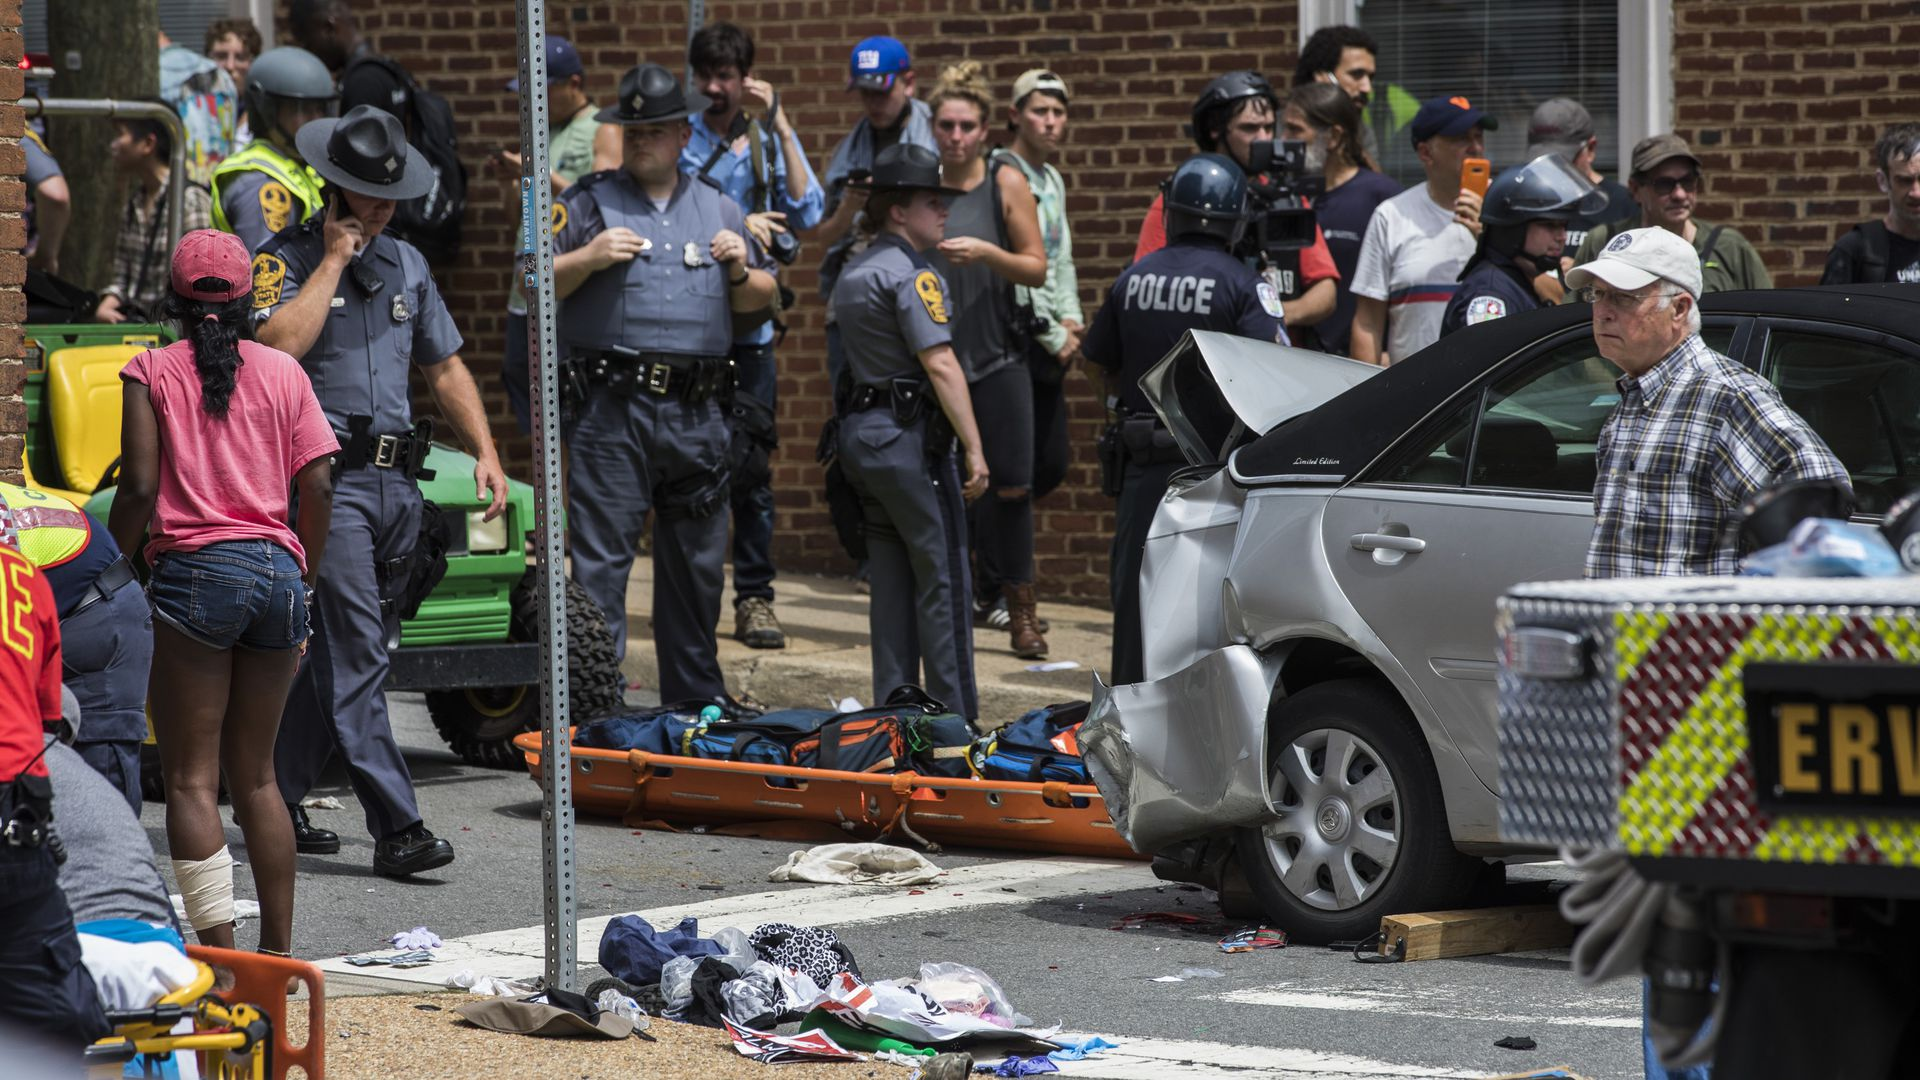 First responders and protestors attend to the injured people after a car rammed into a crowd of anti-White Supremacy protestors in Charlottesville in August  2017.